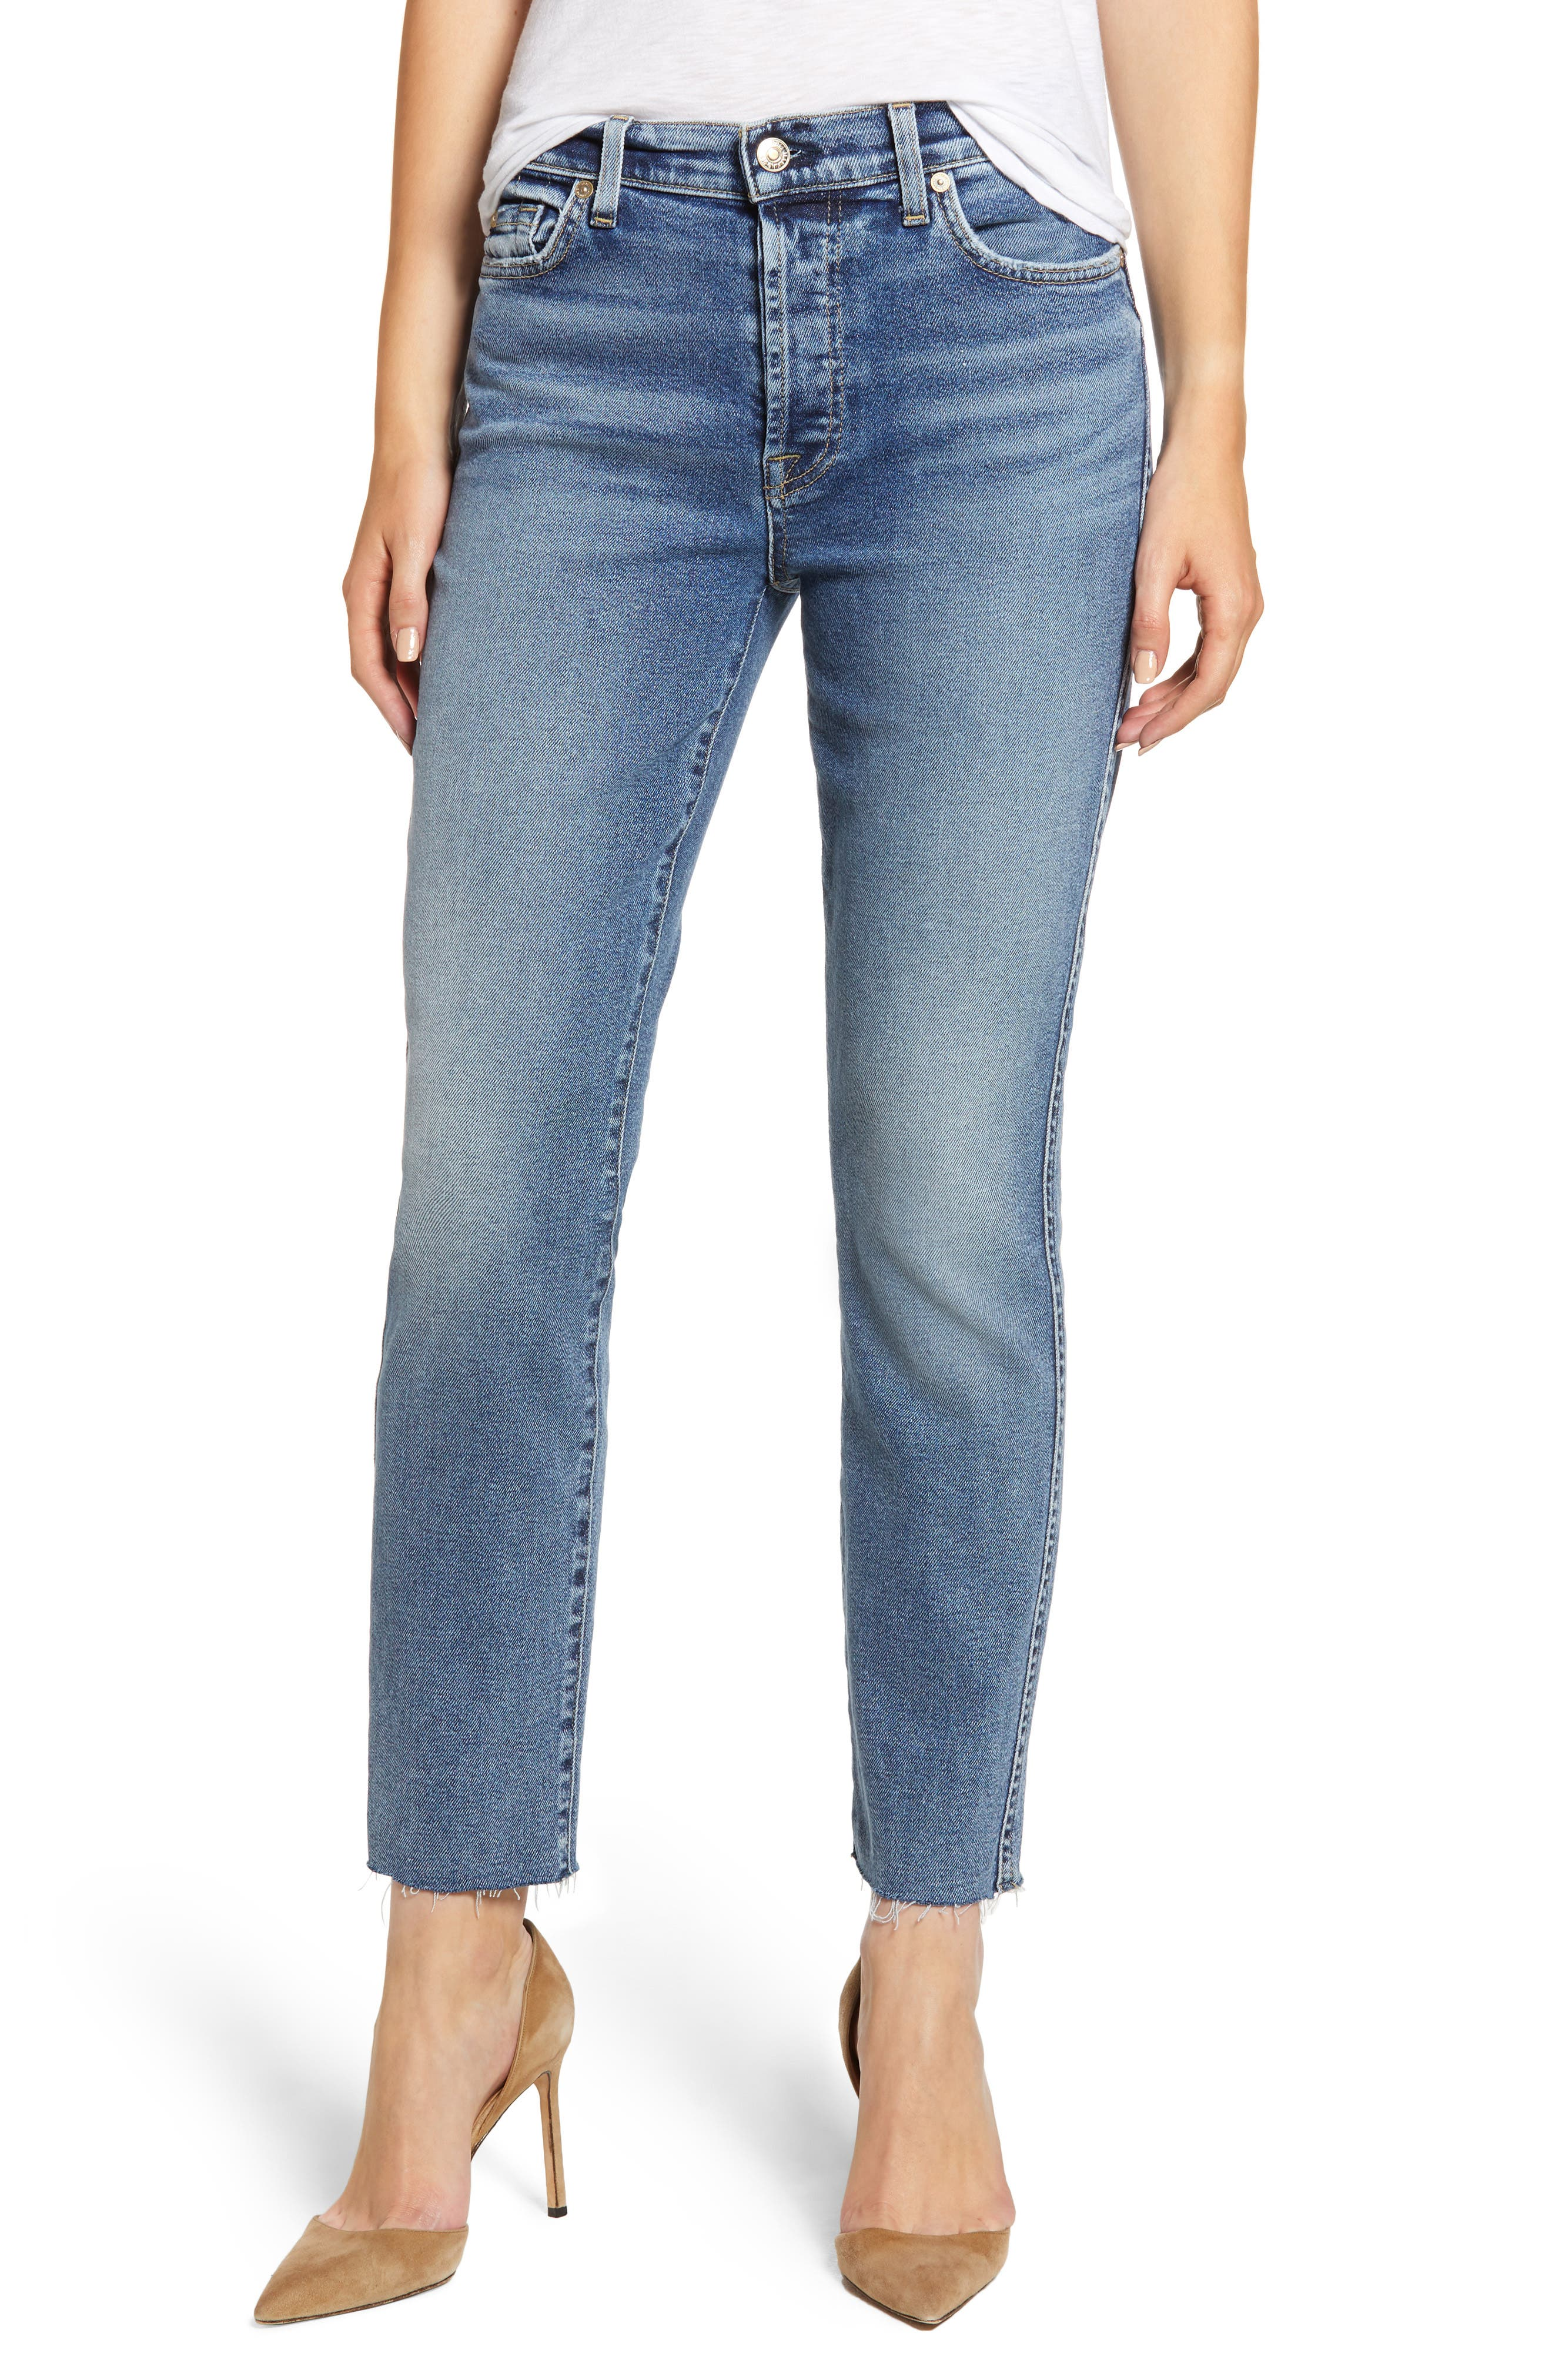 7 FOR ALL MANKIND<SUP>®</SUP> Luxe Vintage Edie Cutoff Hem Straight Leg Jeans, Main, color, LUXE VINTAGE MUSE